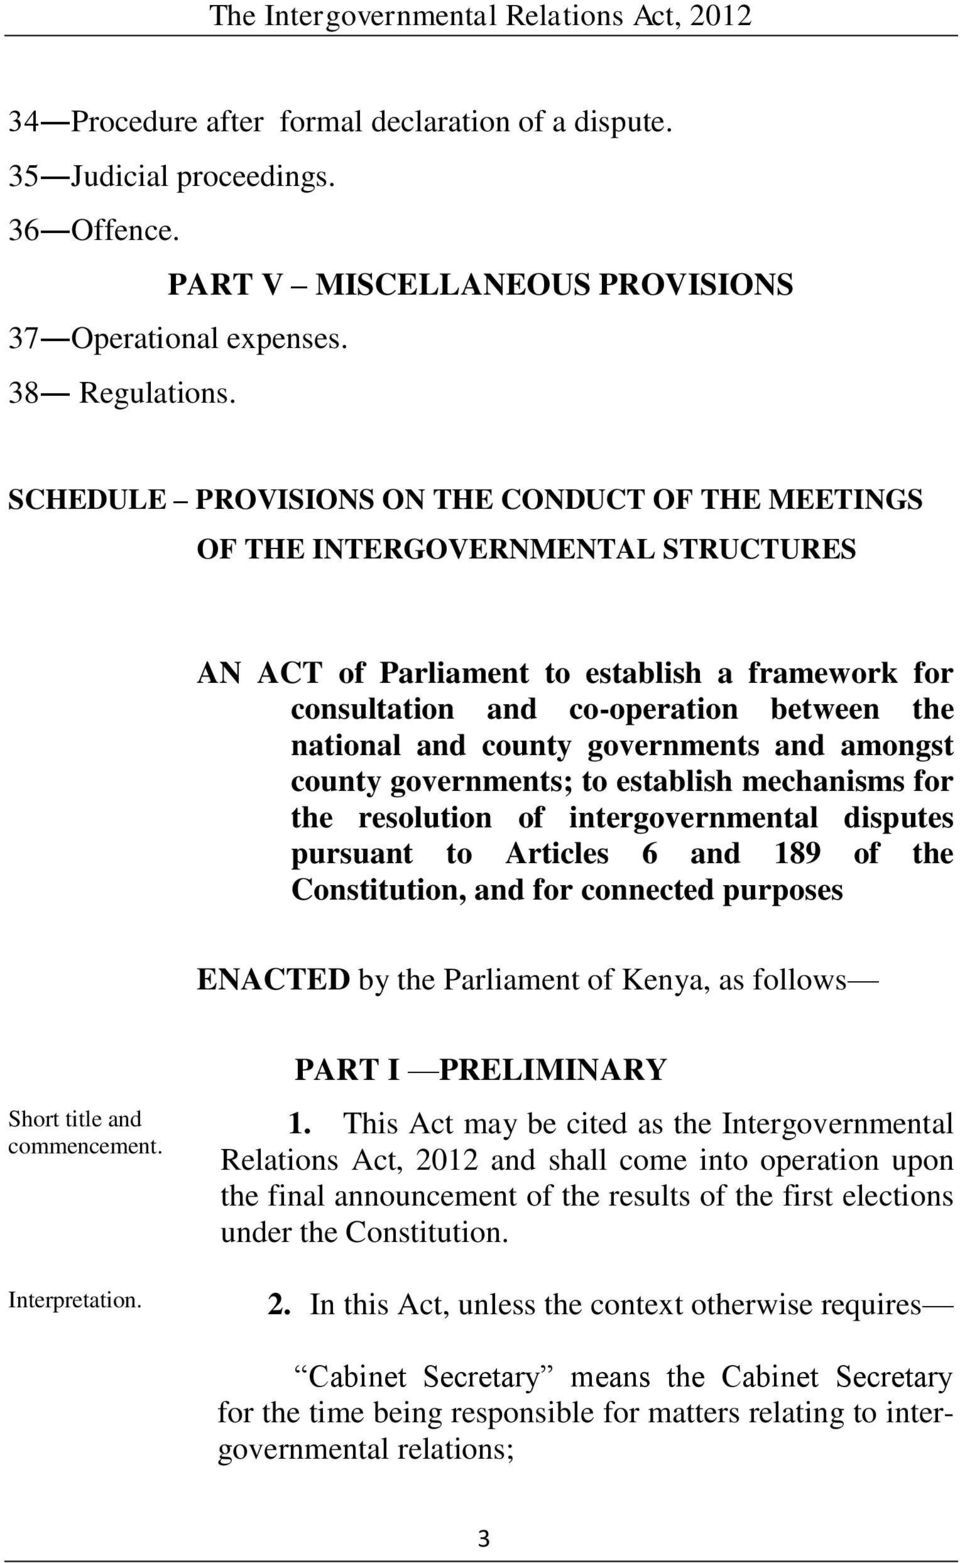 governments and amongst county governments; to establish mechanisms for the resolution of intergovernmental disputes pursuant to Articles 6 and 189 of the Constitution, and for connected purposes